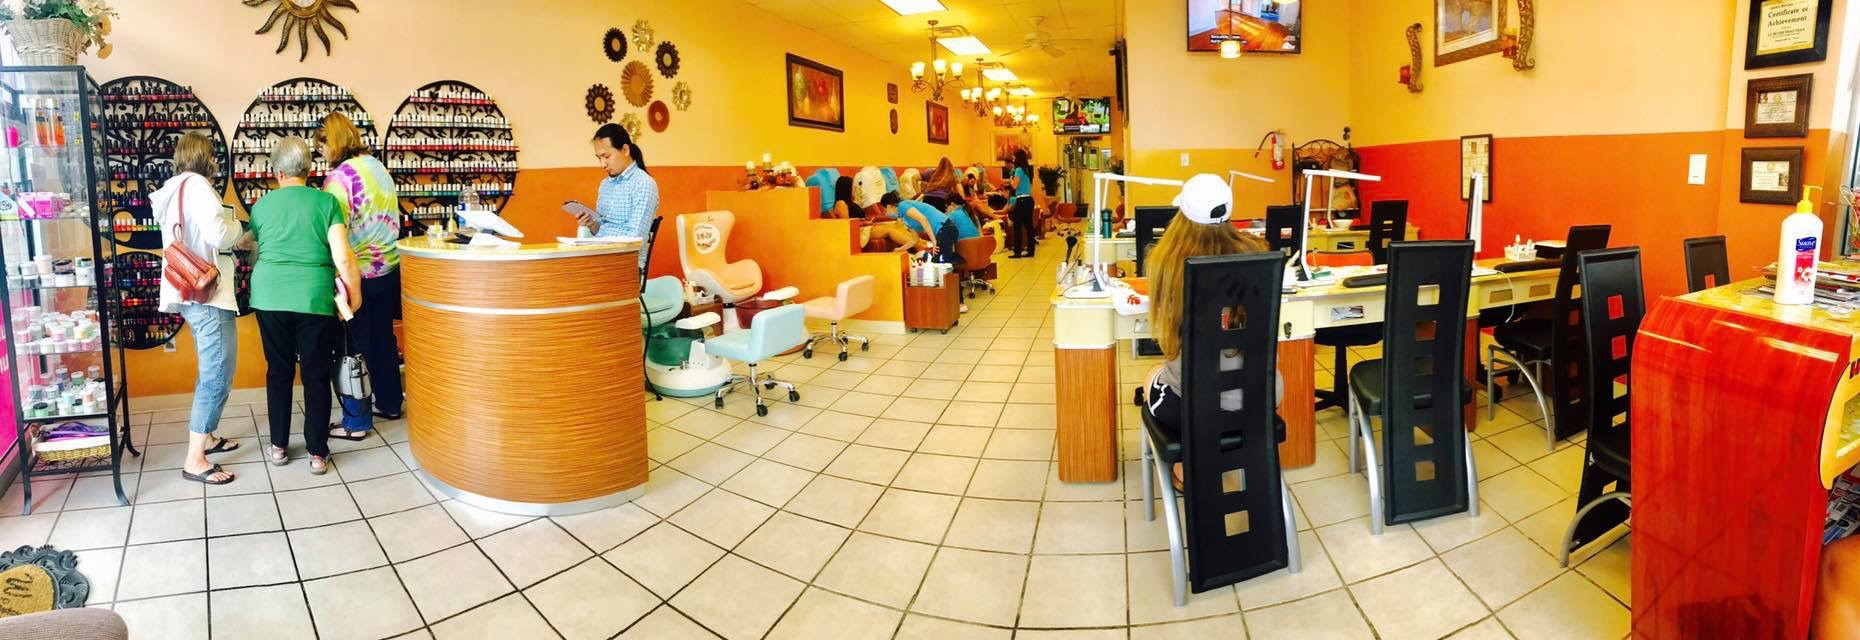 Pedicure in Round Rock Texas